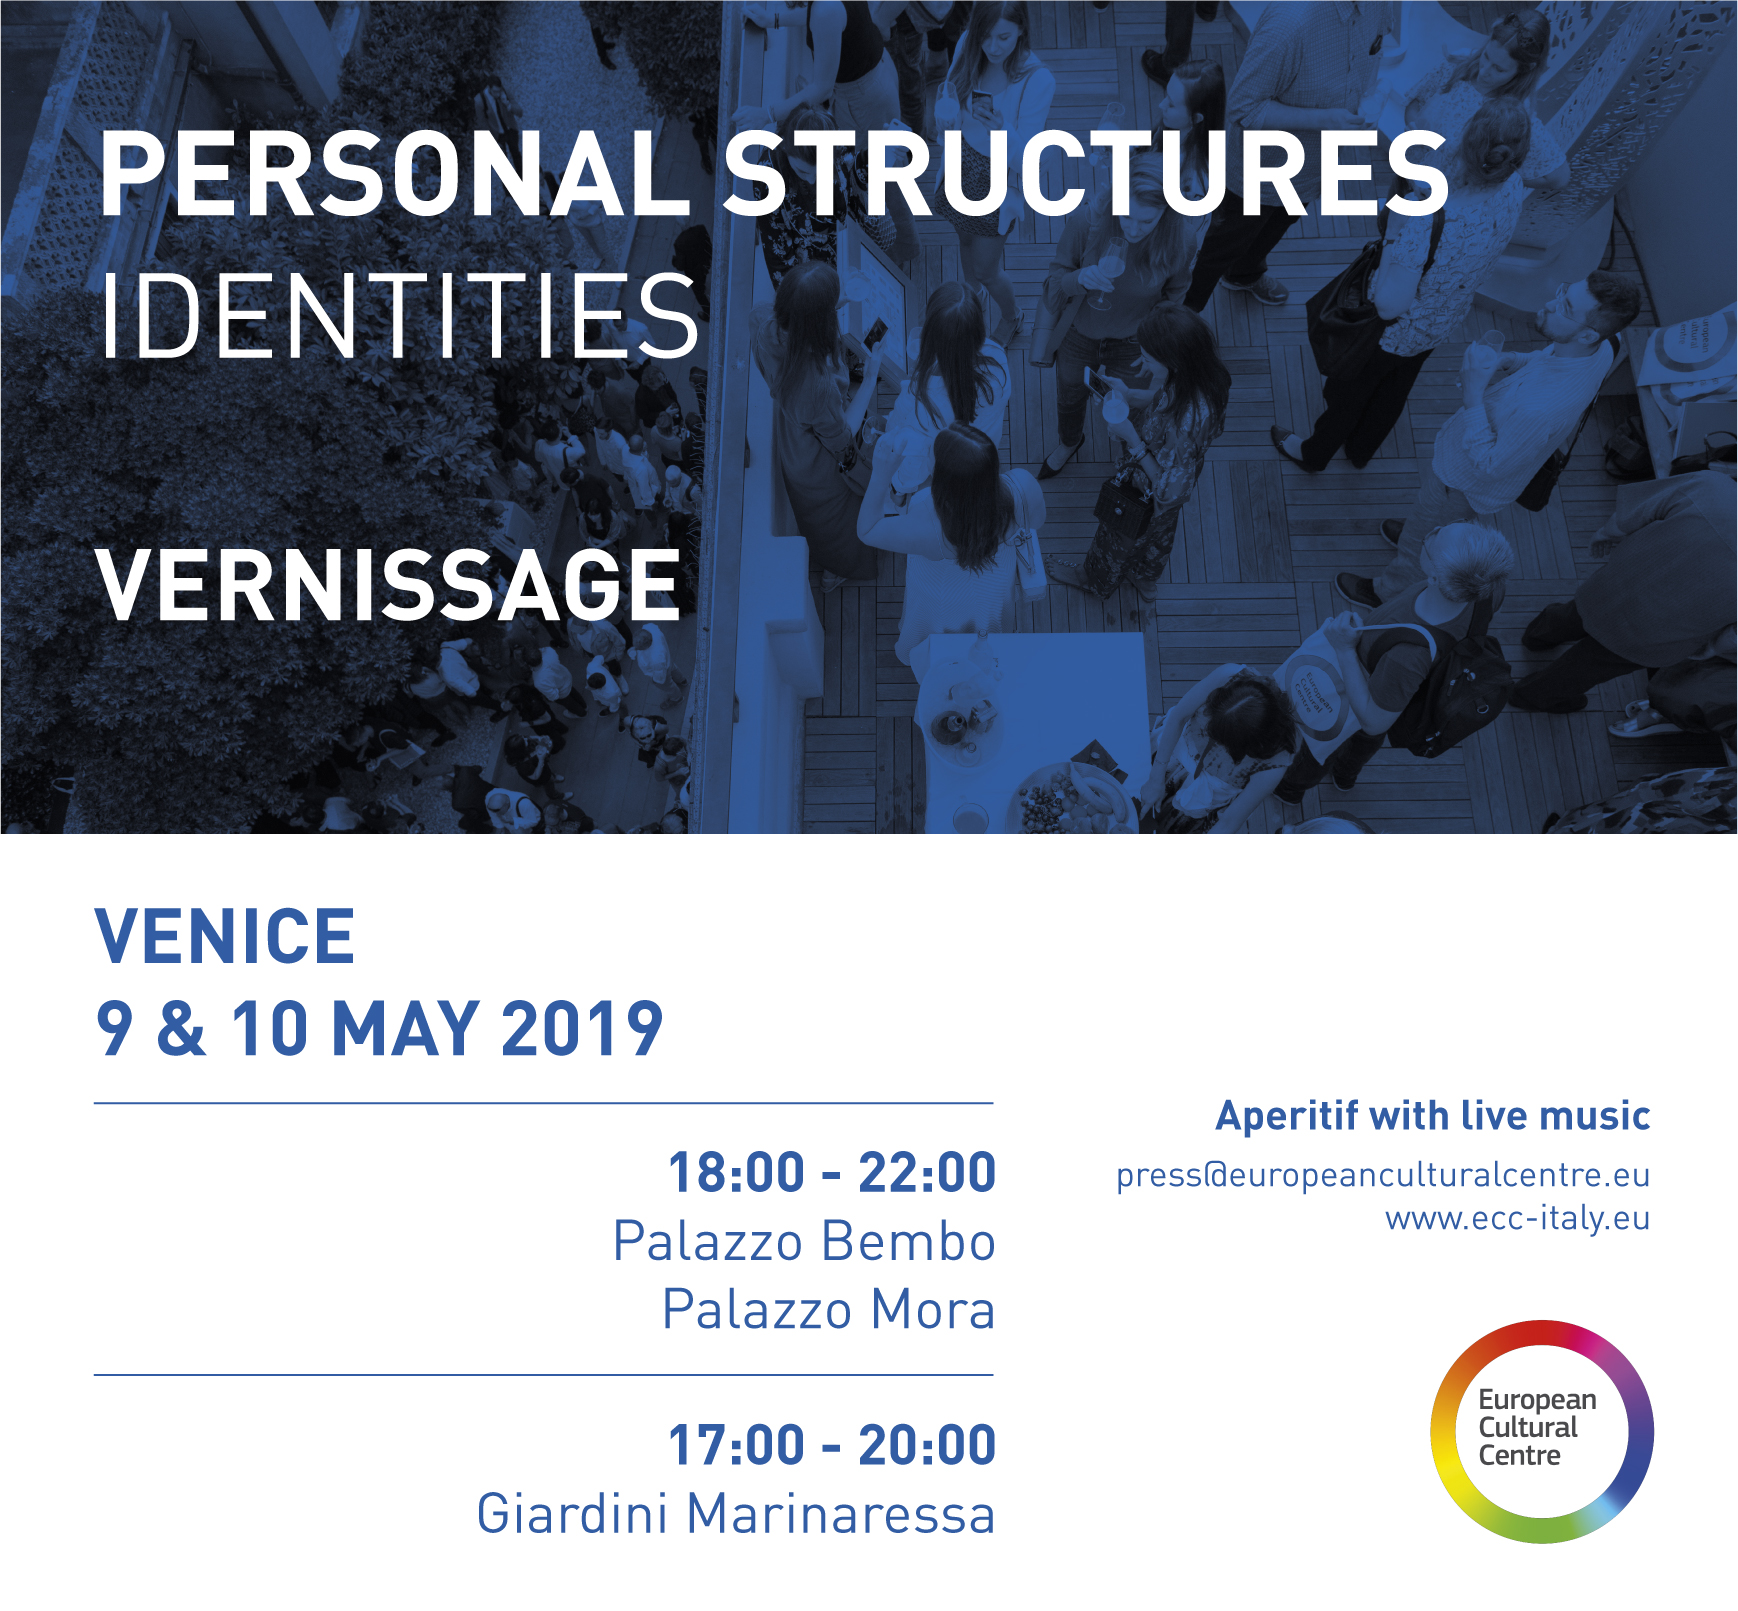 Kathryn Hart, Personal Structures, European Cultural Centre, 58th Venice Biennale